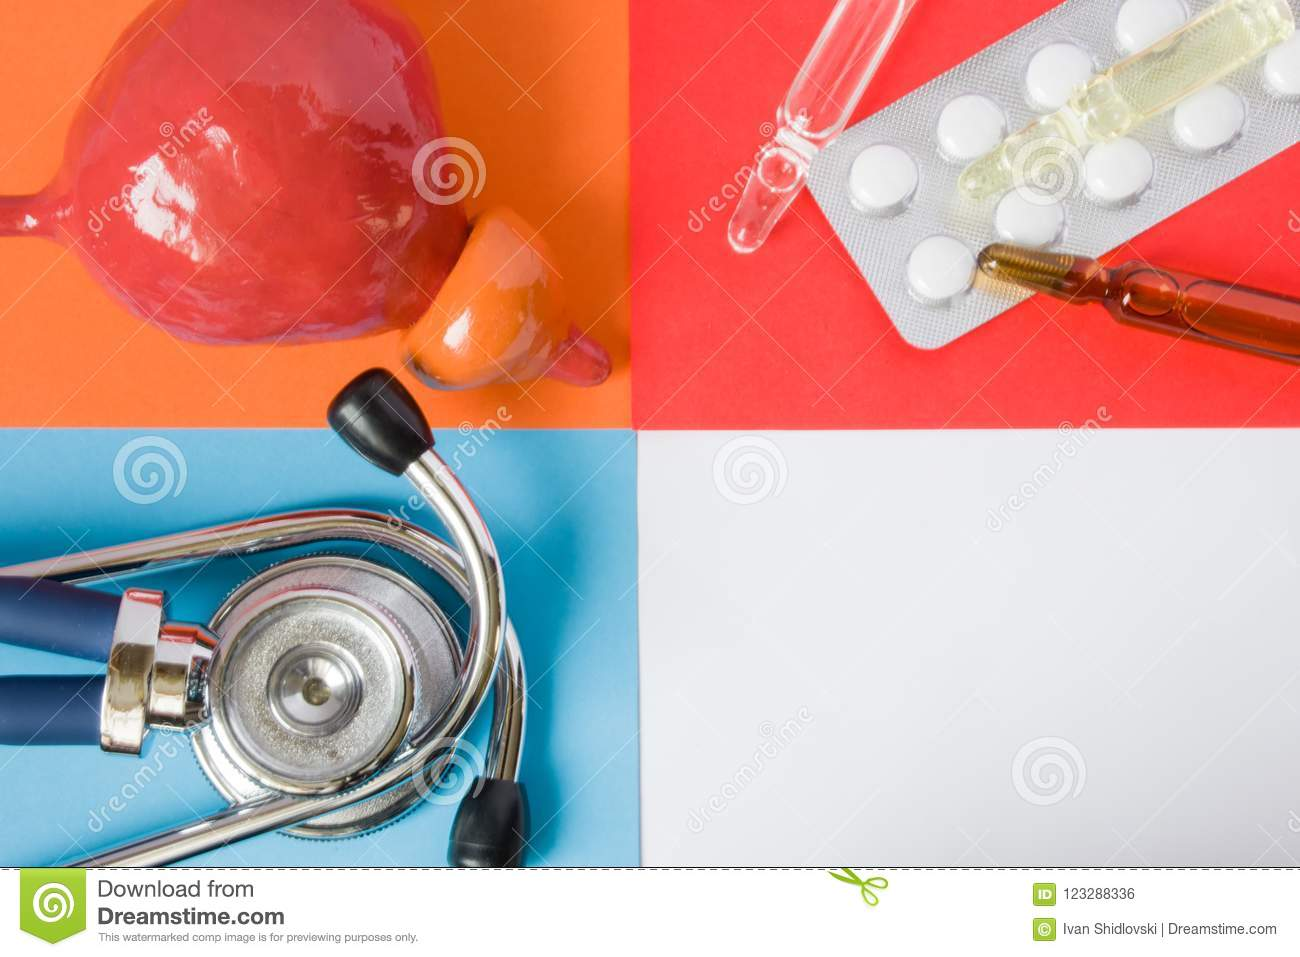 Medical or health care design concept photo-organ prostate, diagnostic medical tool stethoscope and medications pills and via